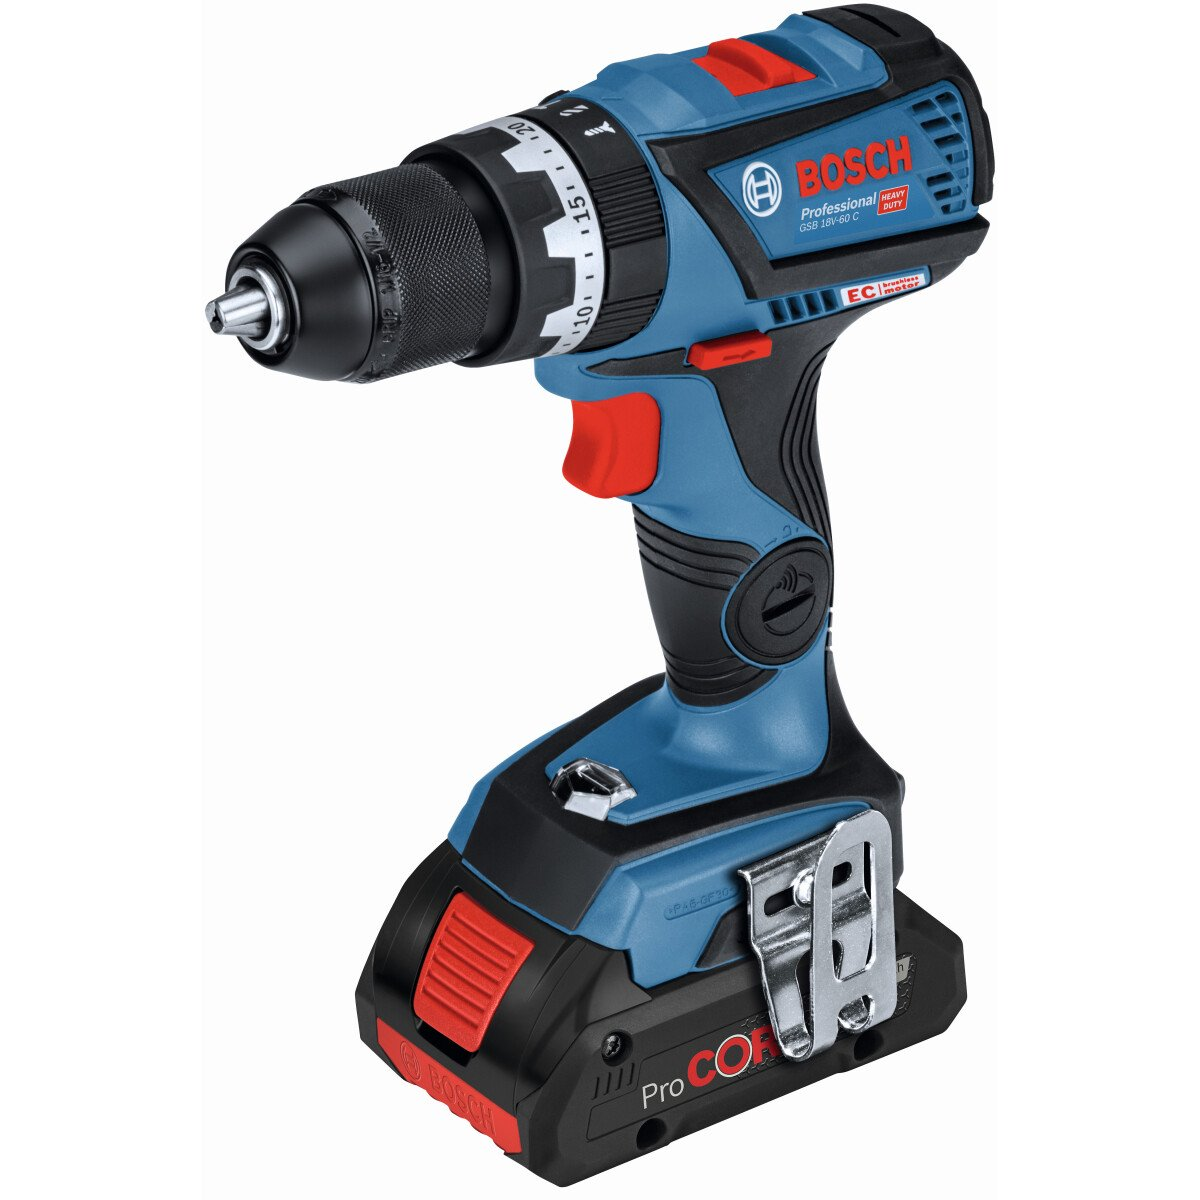 Bosch GSB 18V-60 CPC2 18v BRUSHLESS 2 Speed Mid-range Combi Drill 2 x PROCORE18V 4Ah Connection Ready in L-Boxx